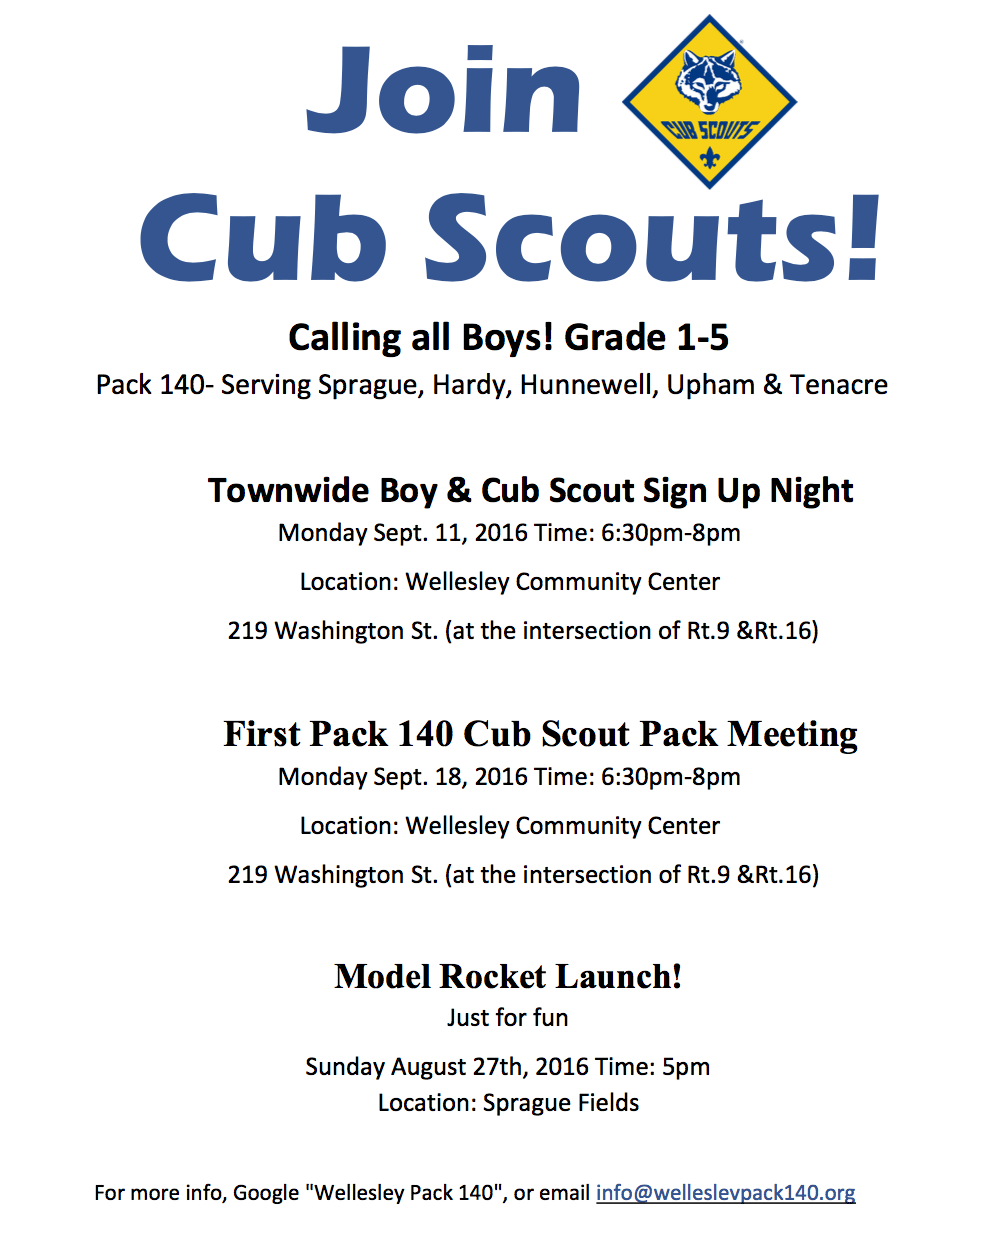 Wellesley Cub Scouts